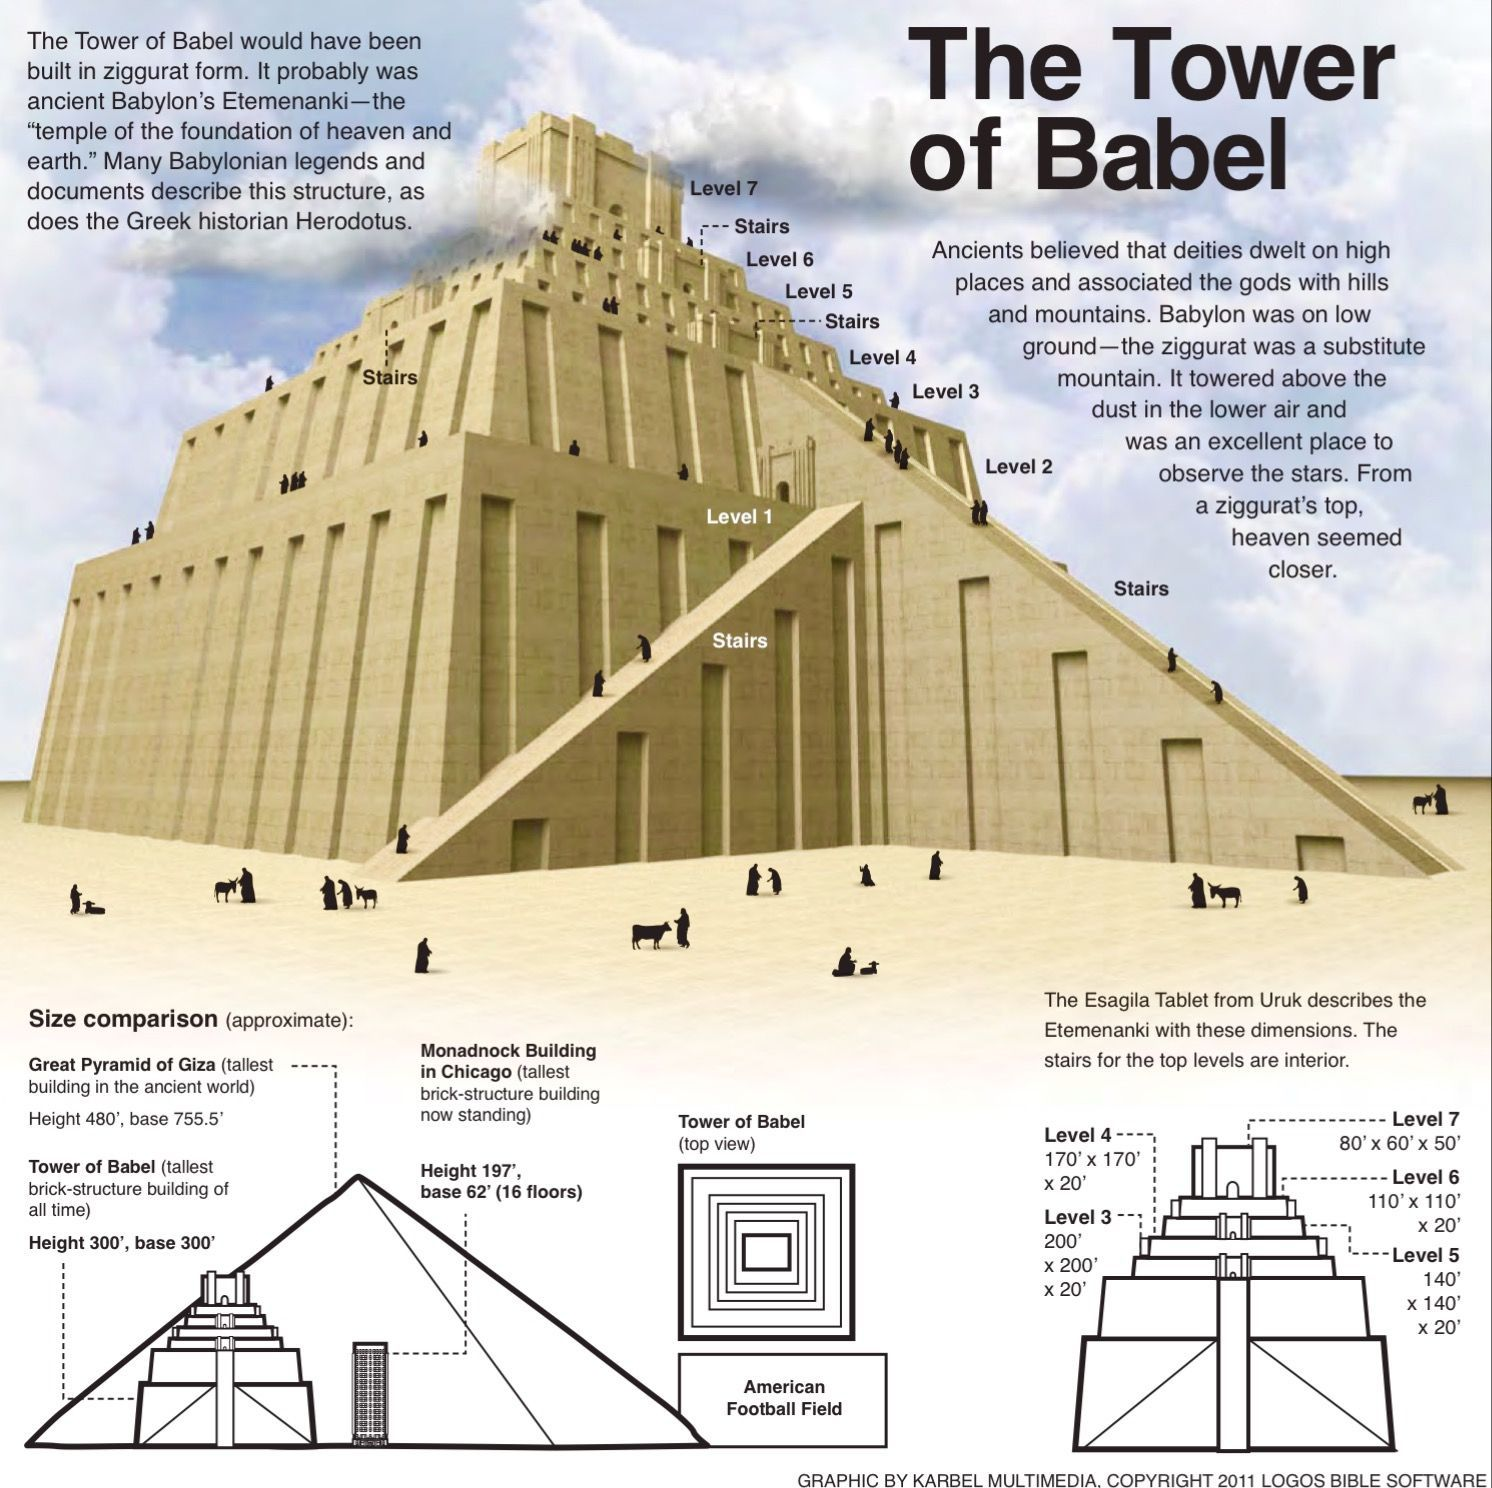 The Tower Of Bable Was Likely The Ziggurat Etemenanki Temple Of The Foundation Of Heaven And Earth Which Was De Tower Of Babel Bible History Bible Teachings